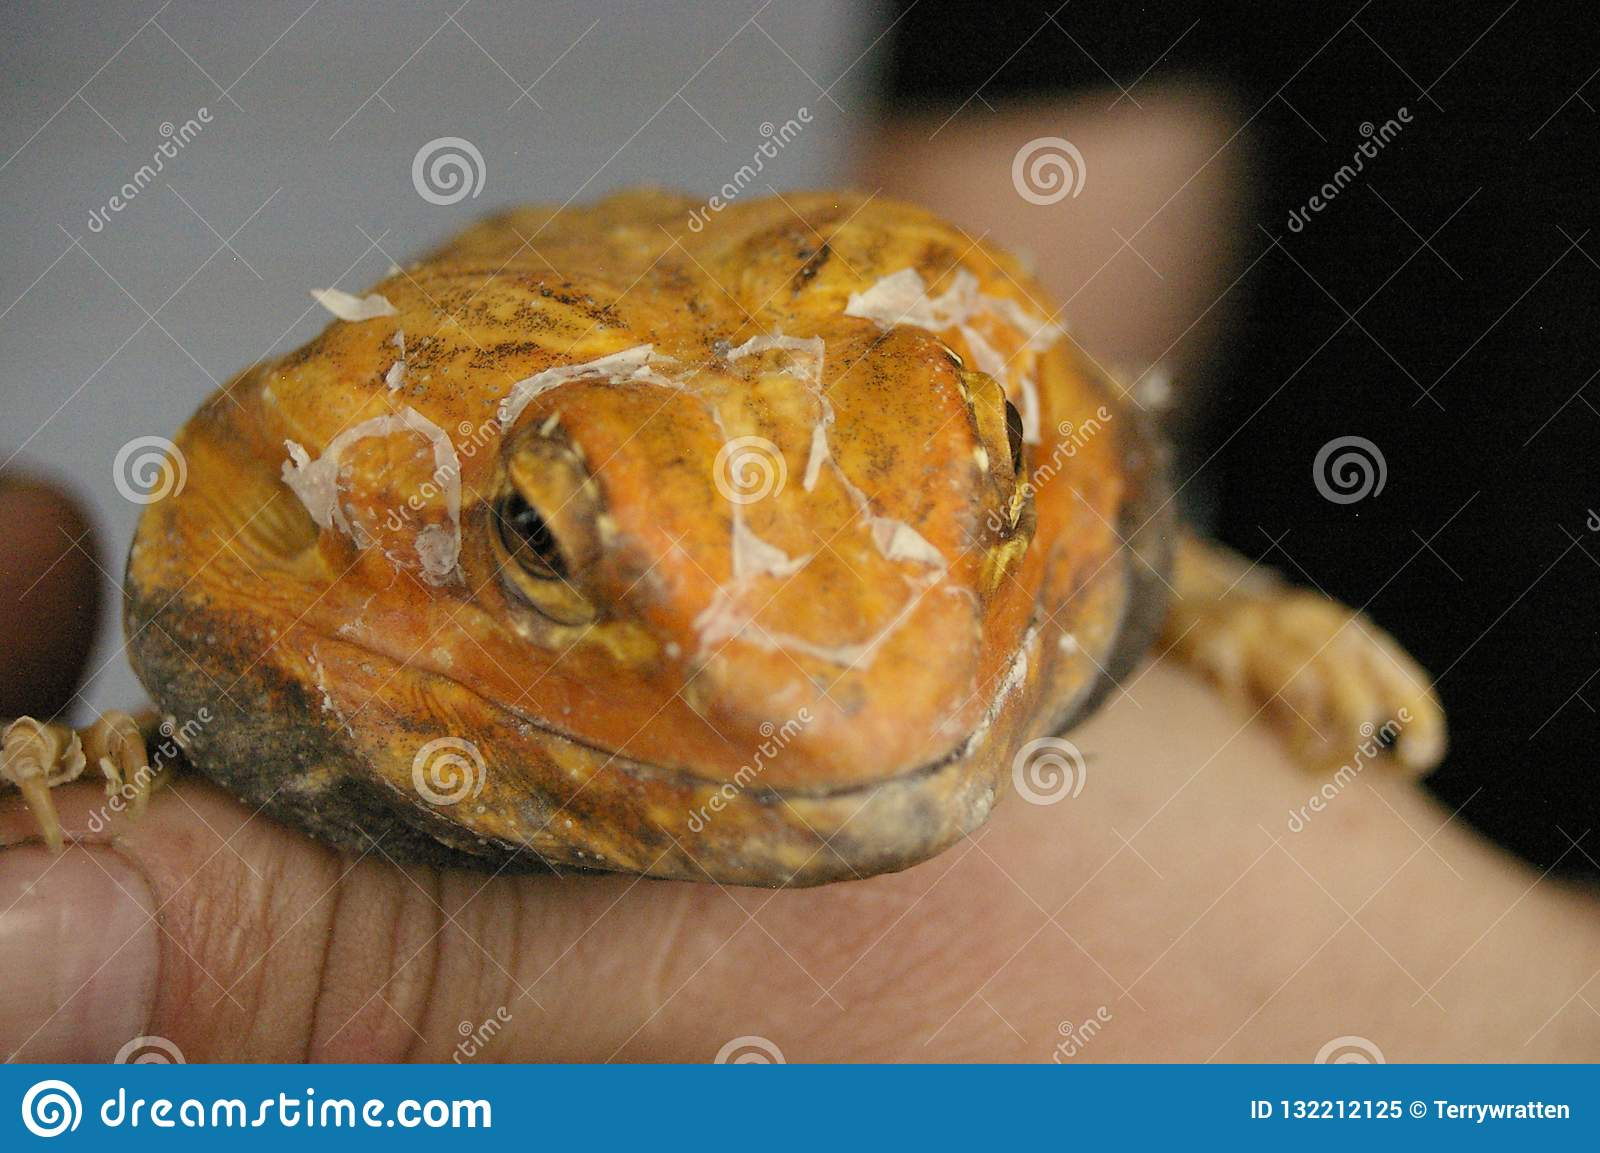 tame, captive, native orange leather back bearded dragon